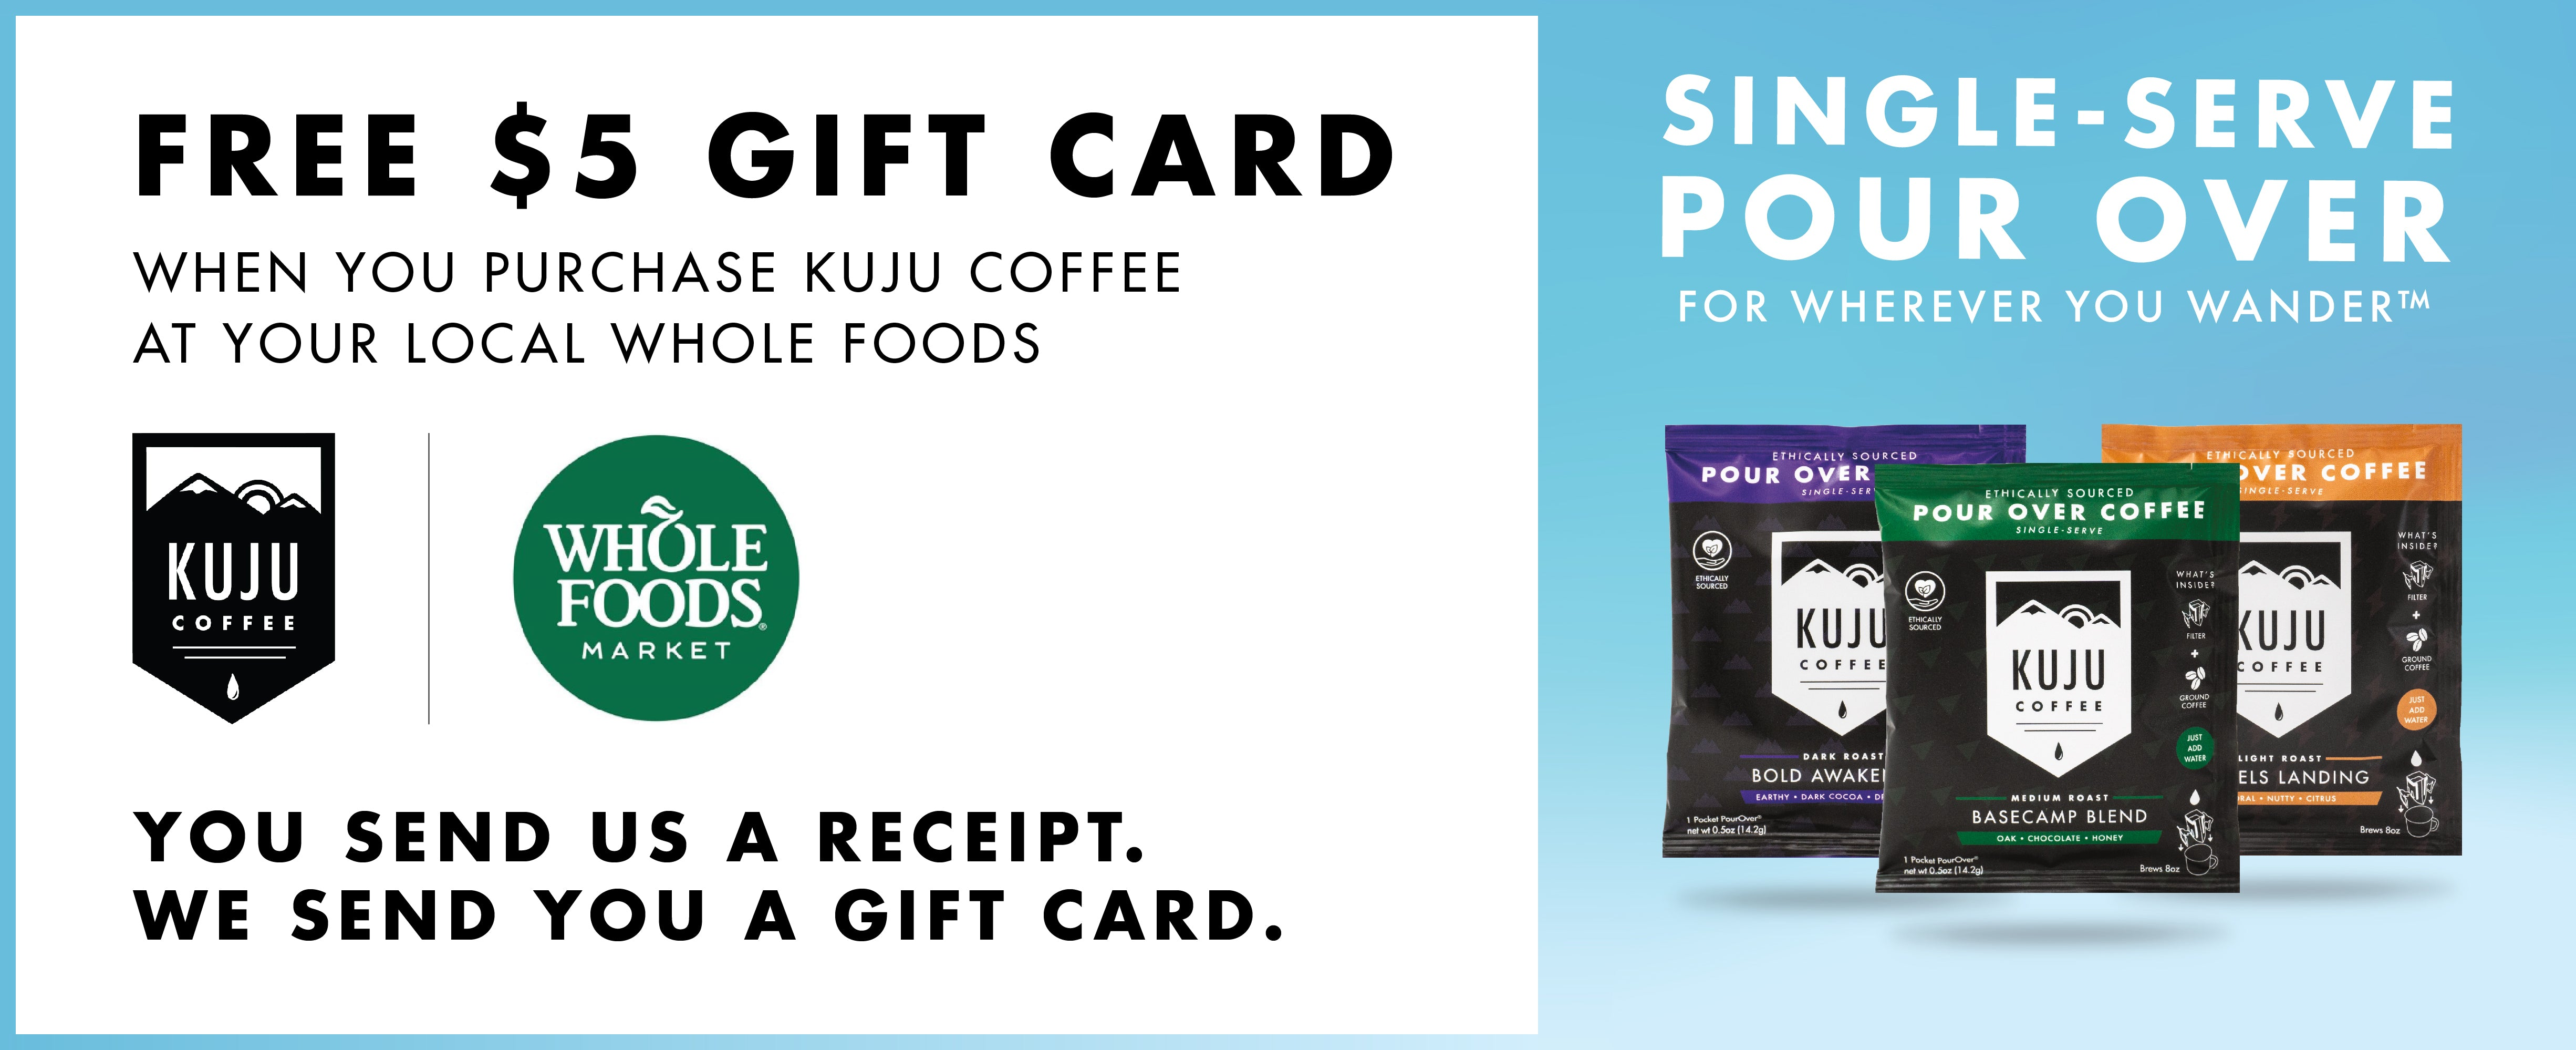 free gift card with kuju coffee purchase at whole foods